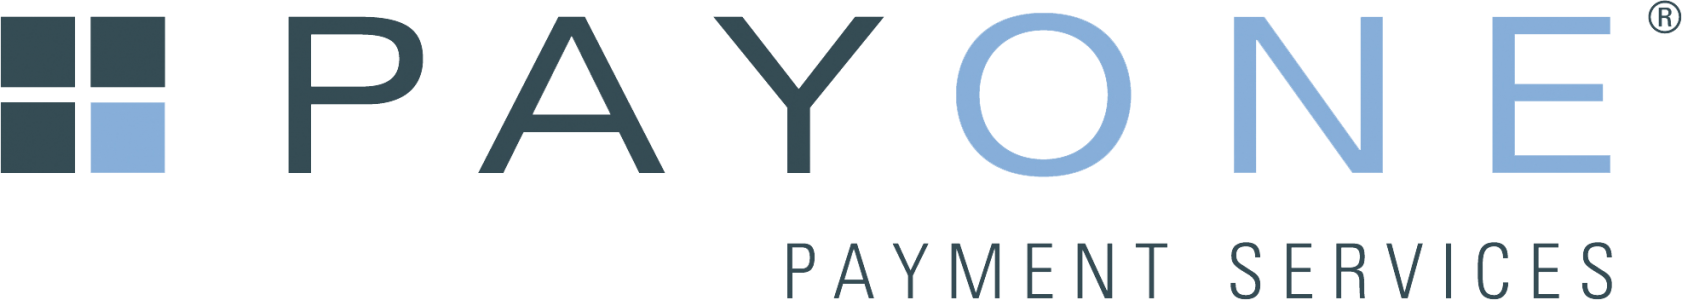 payone-logo-1682x300